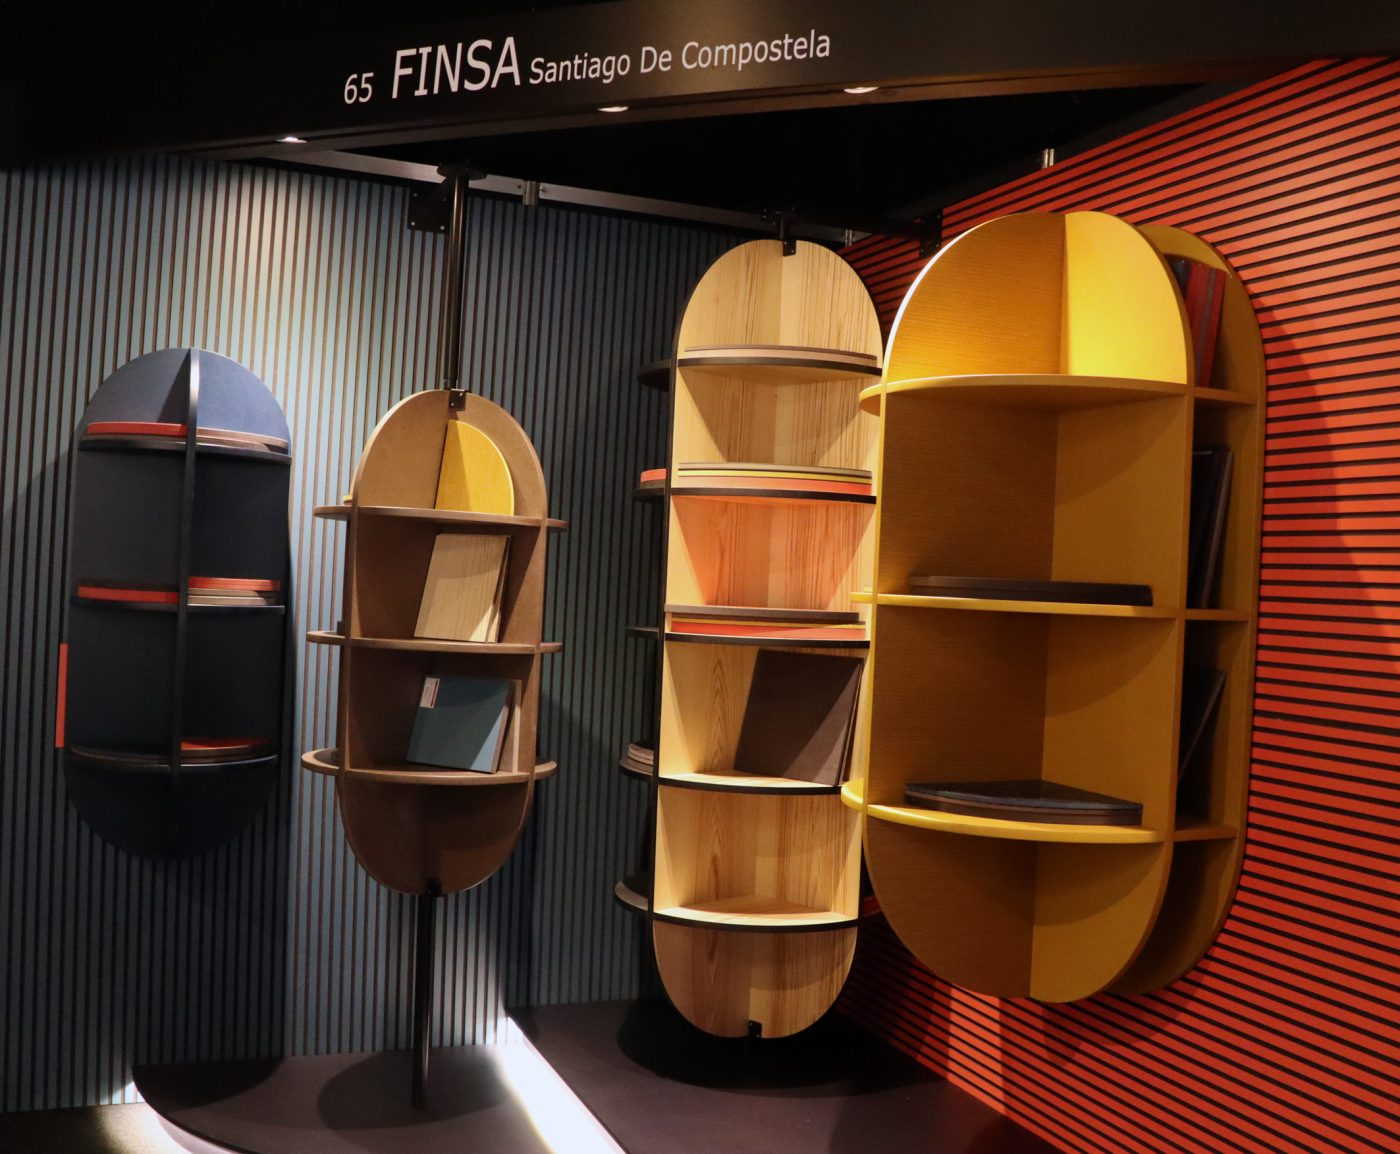 FINSA lanza su nueva gama Fibracolour en Architect@Work Madrid